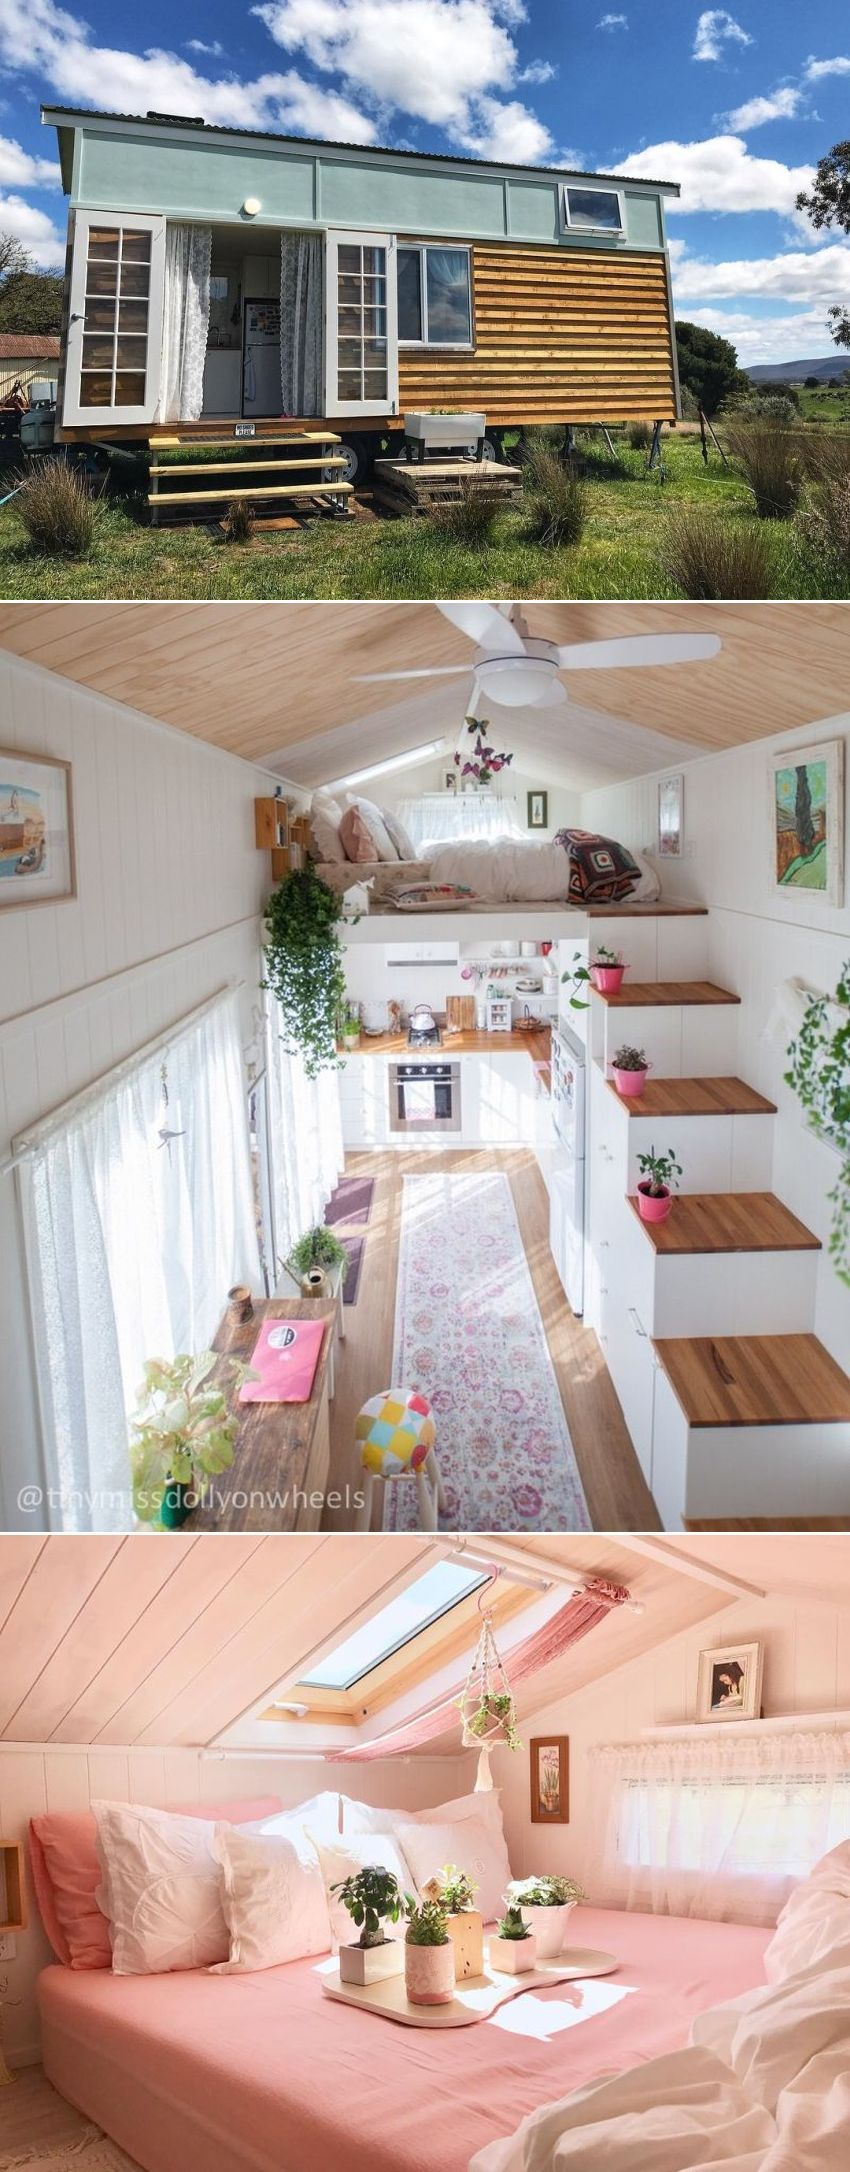 Dolly Rubiano's Tiny House Features Two Lofts and Walk-in Wardrobe